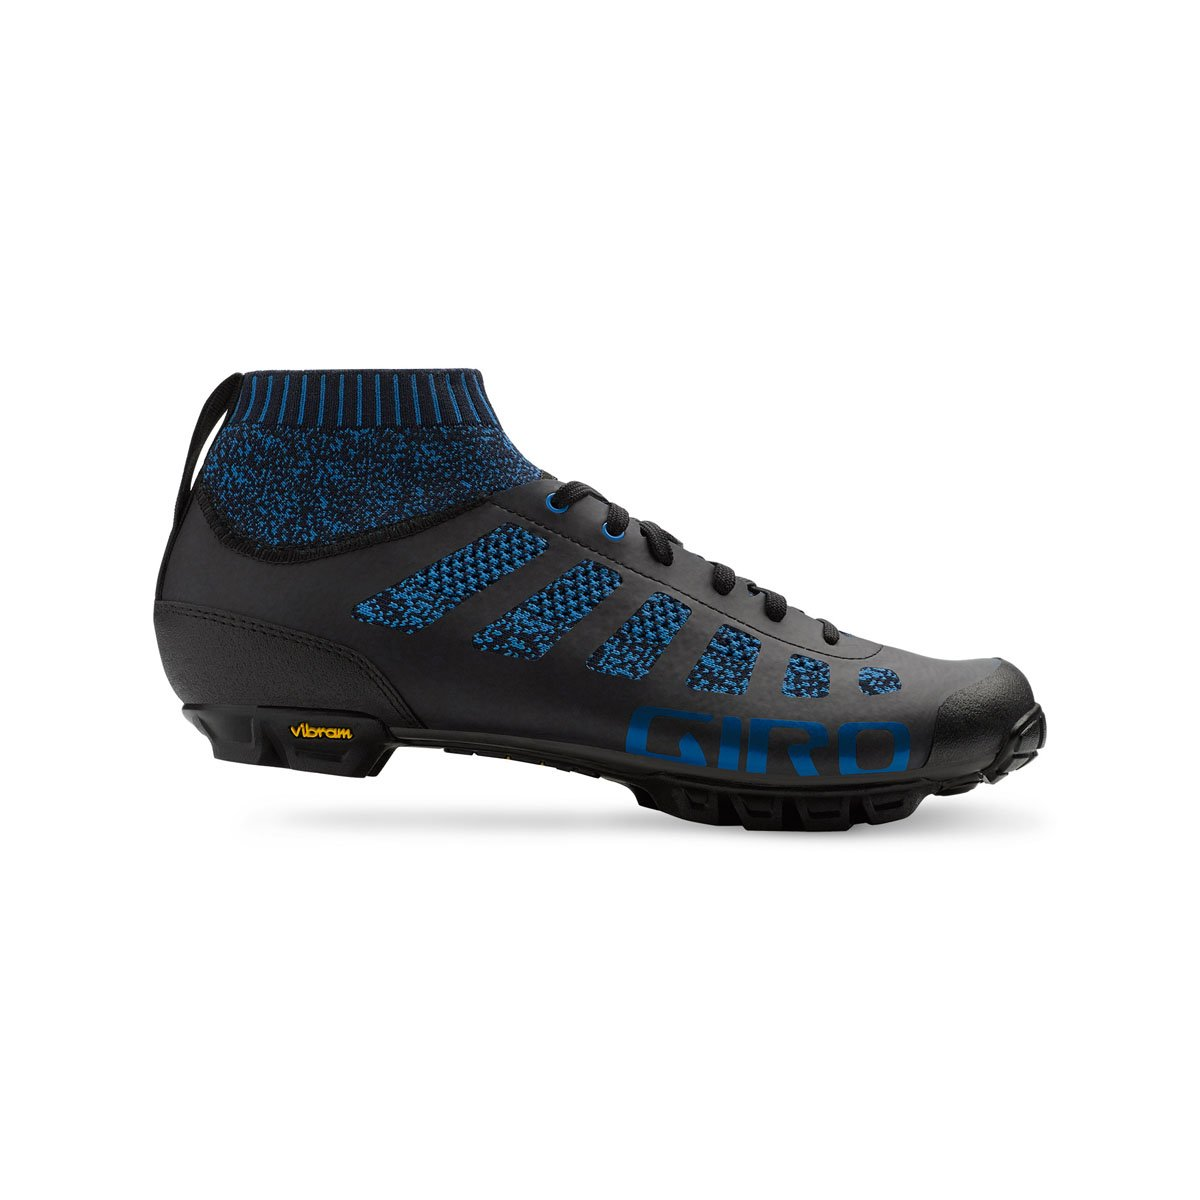 Midnight blueee 45 Giro Empire VR70 Knit Cycling shoes  Men's